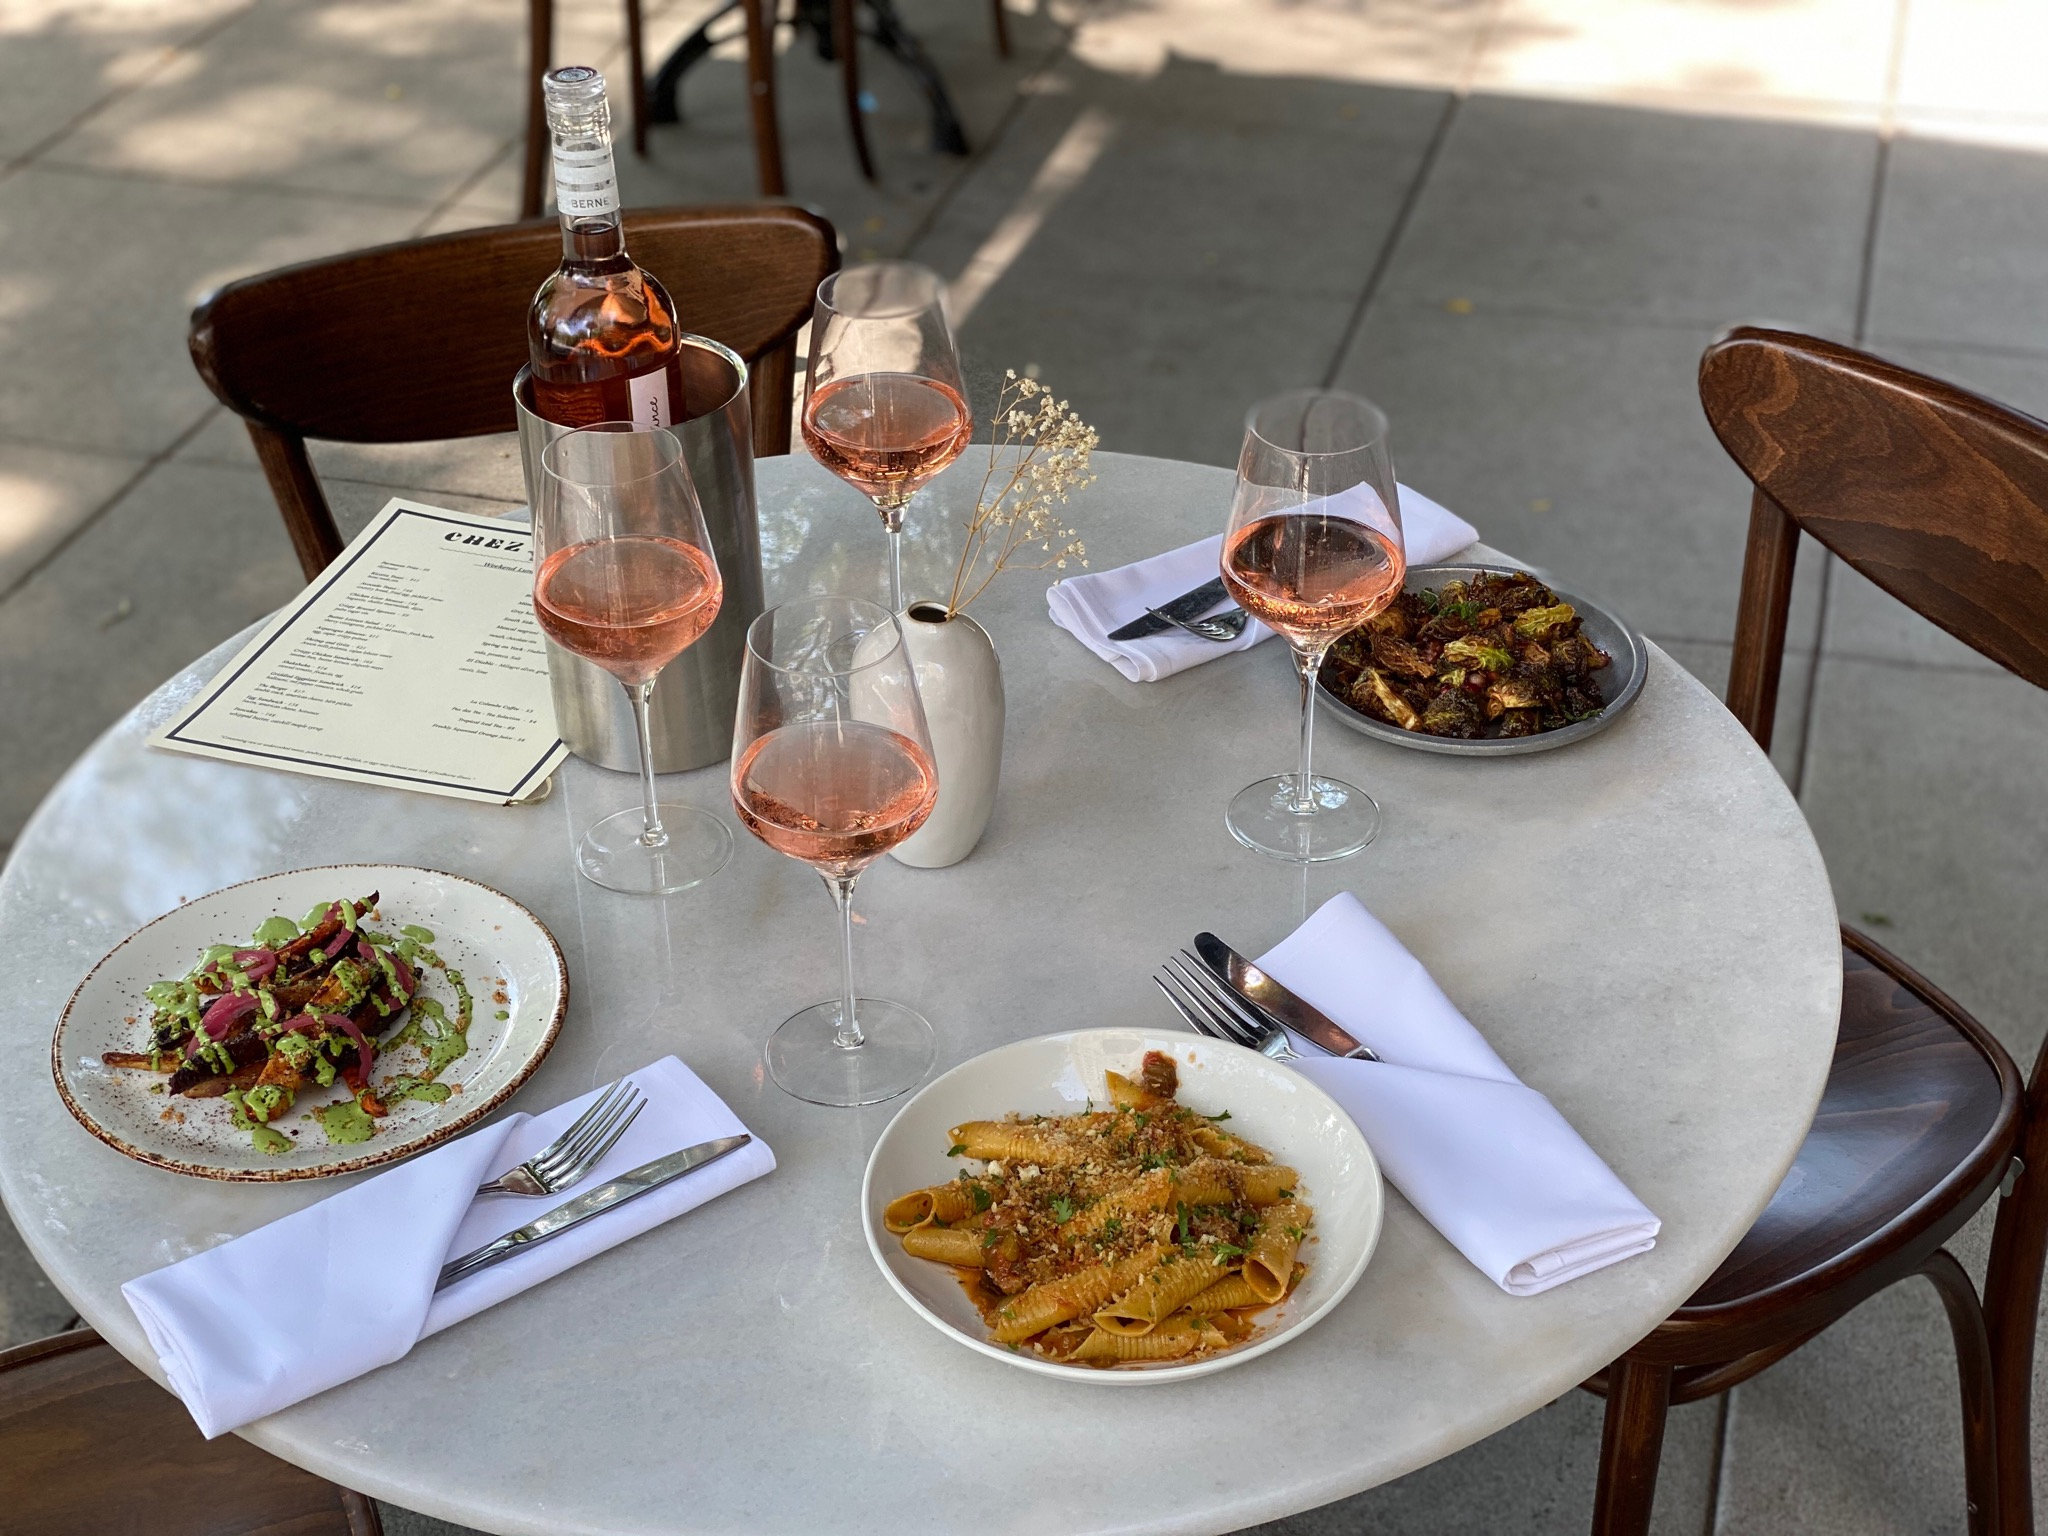 An outdoor dining table with four glasses of rosé, three bowls of pasta, and two dark wooden chairs pulled up.